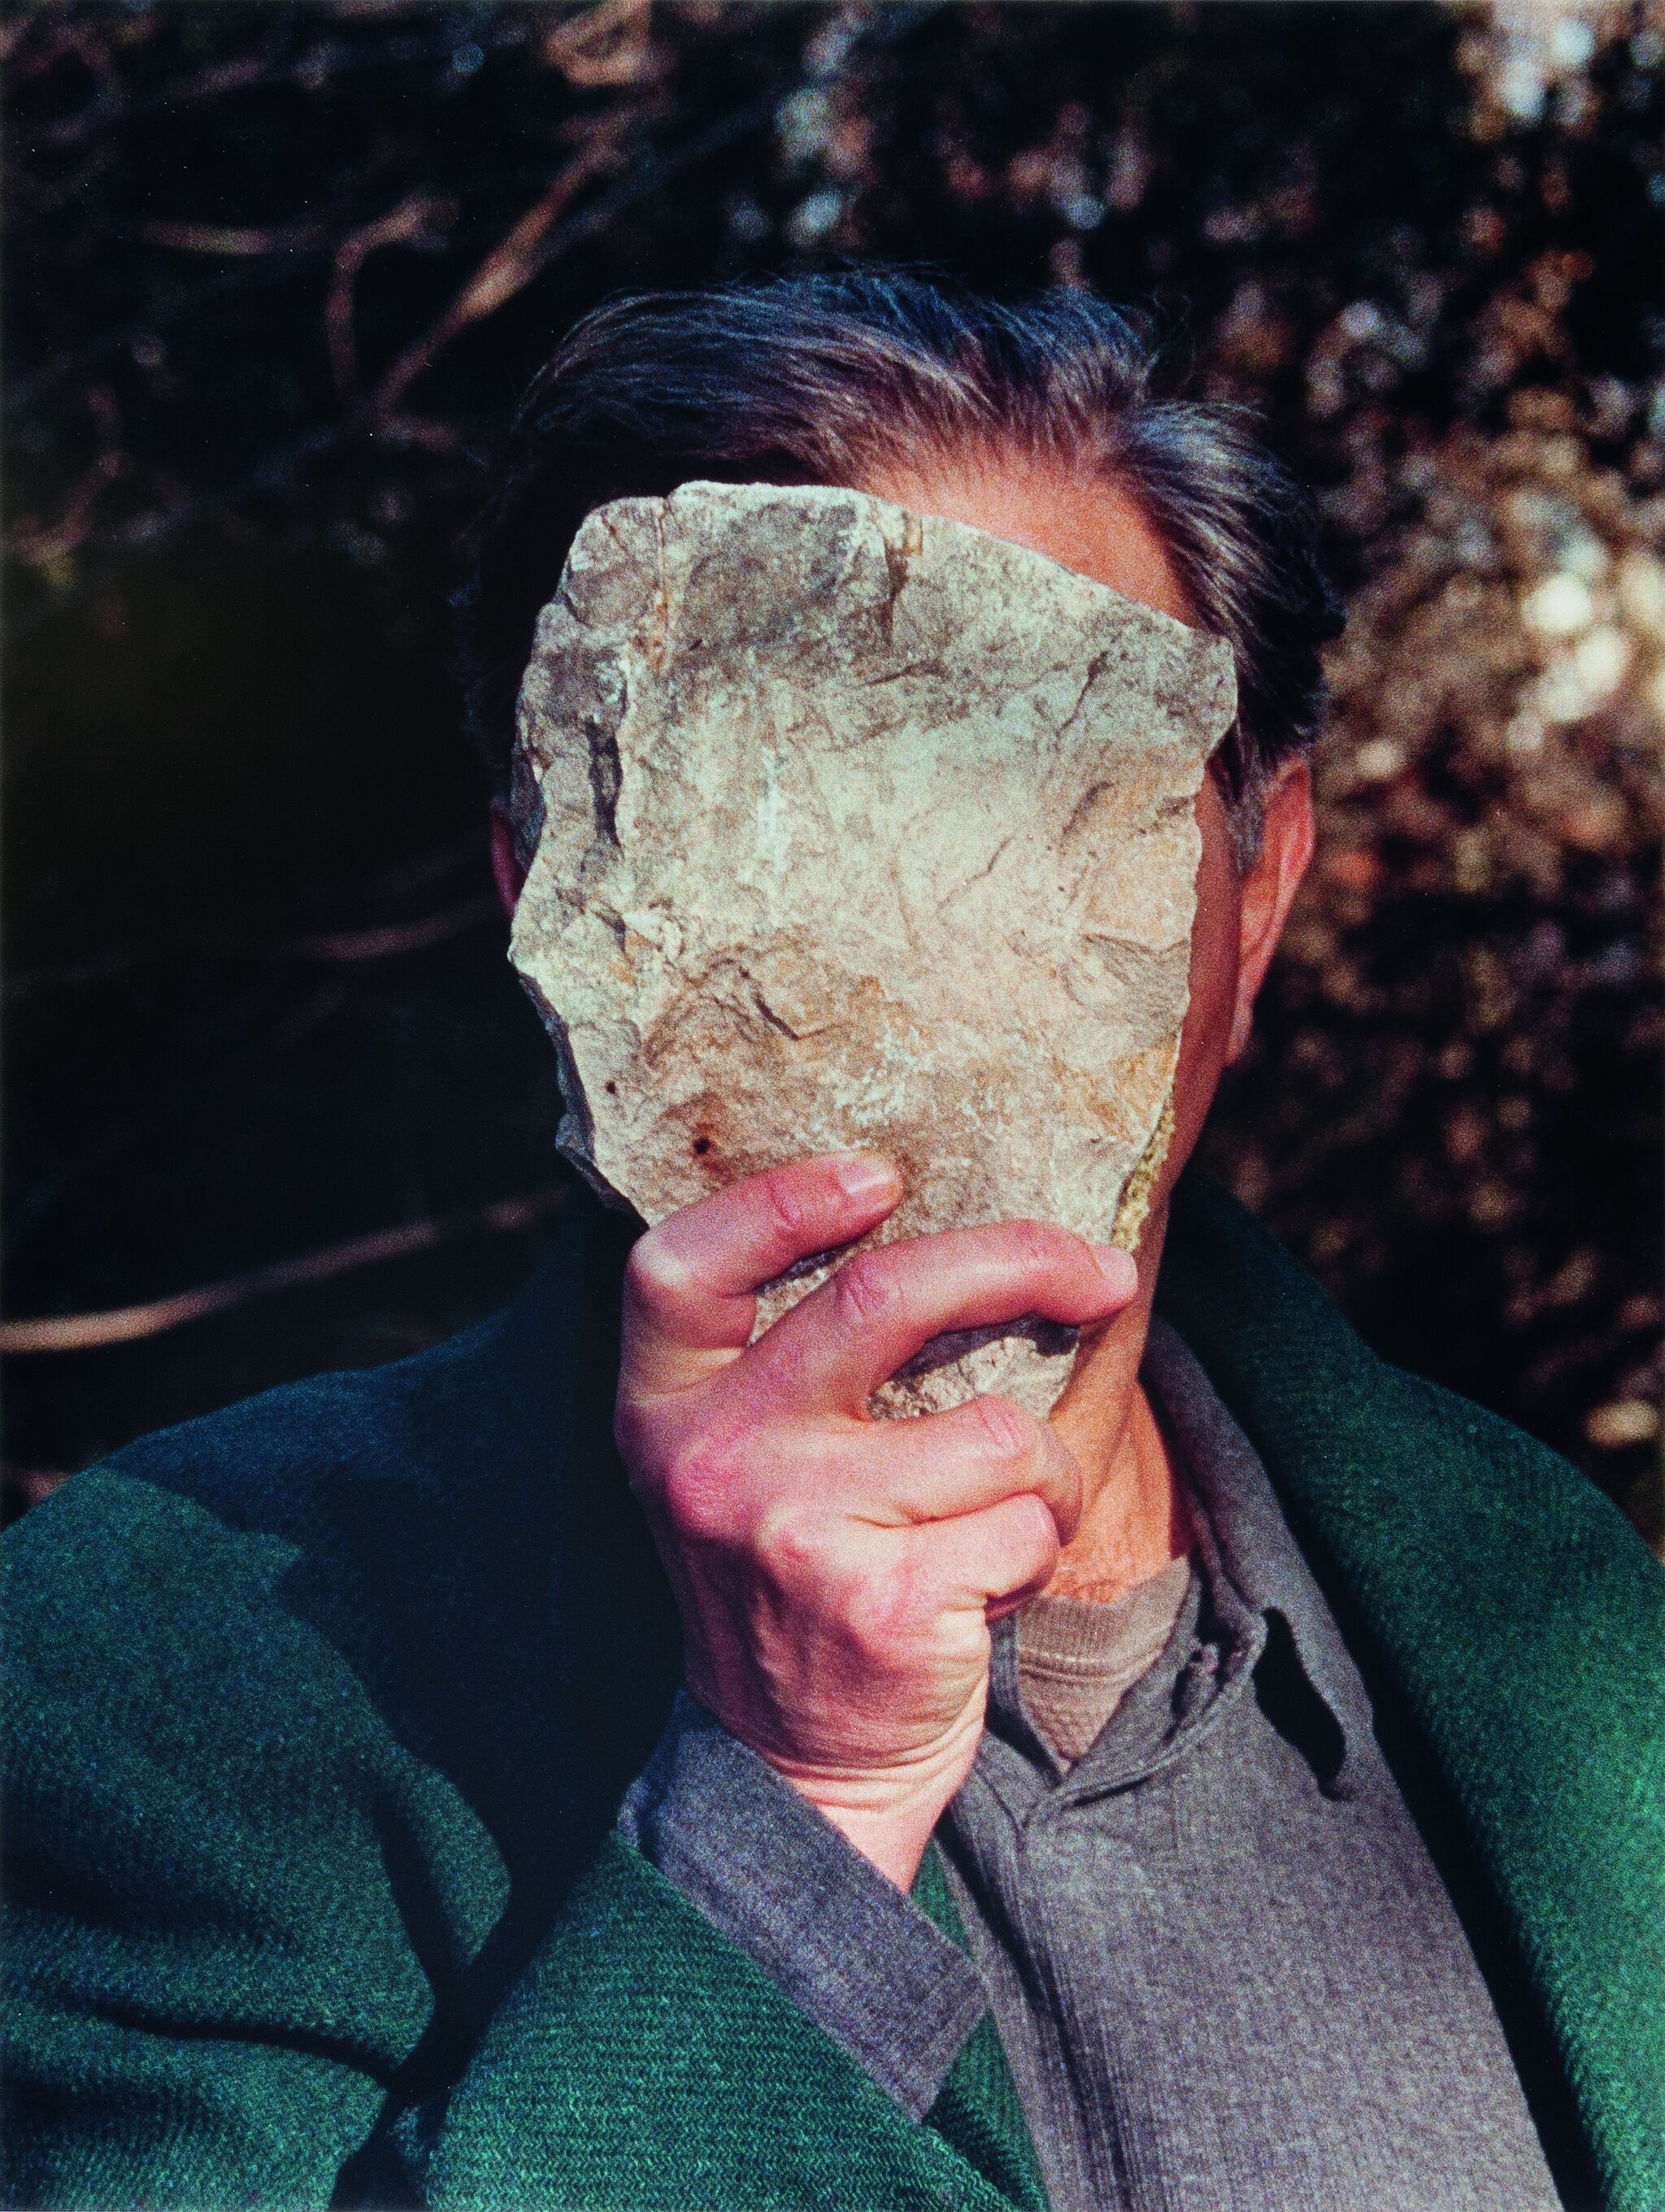 Photograph of a man holding a rock in front of his face.